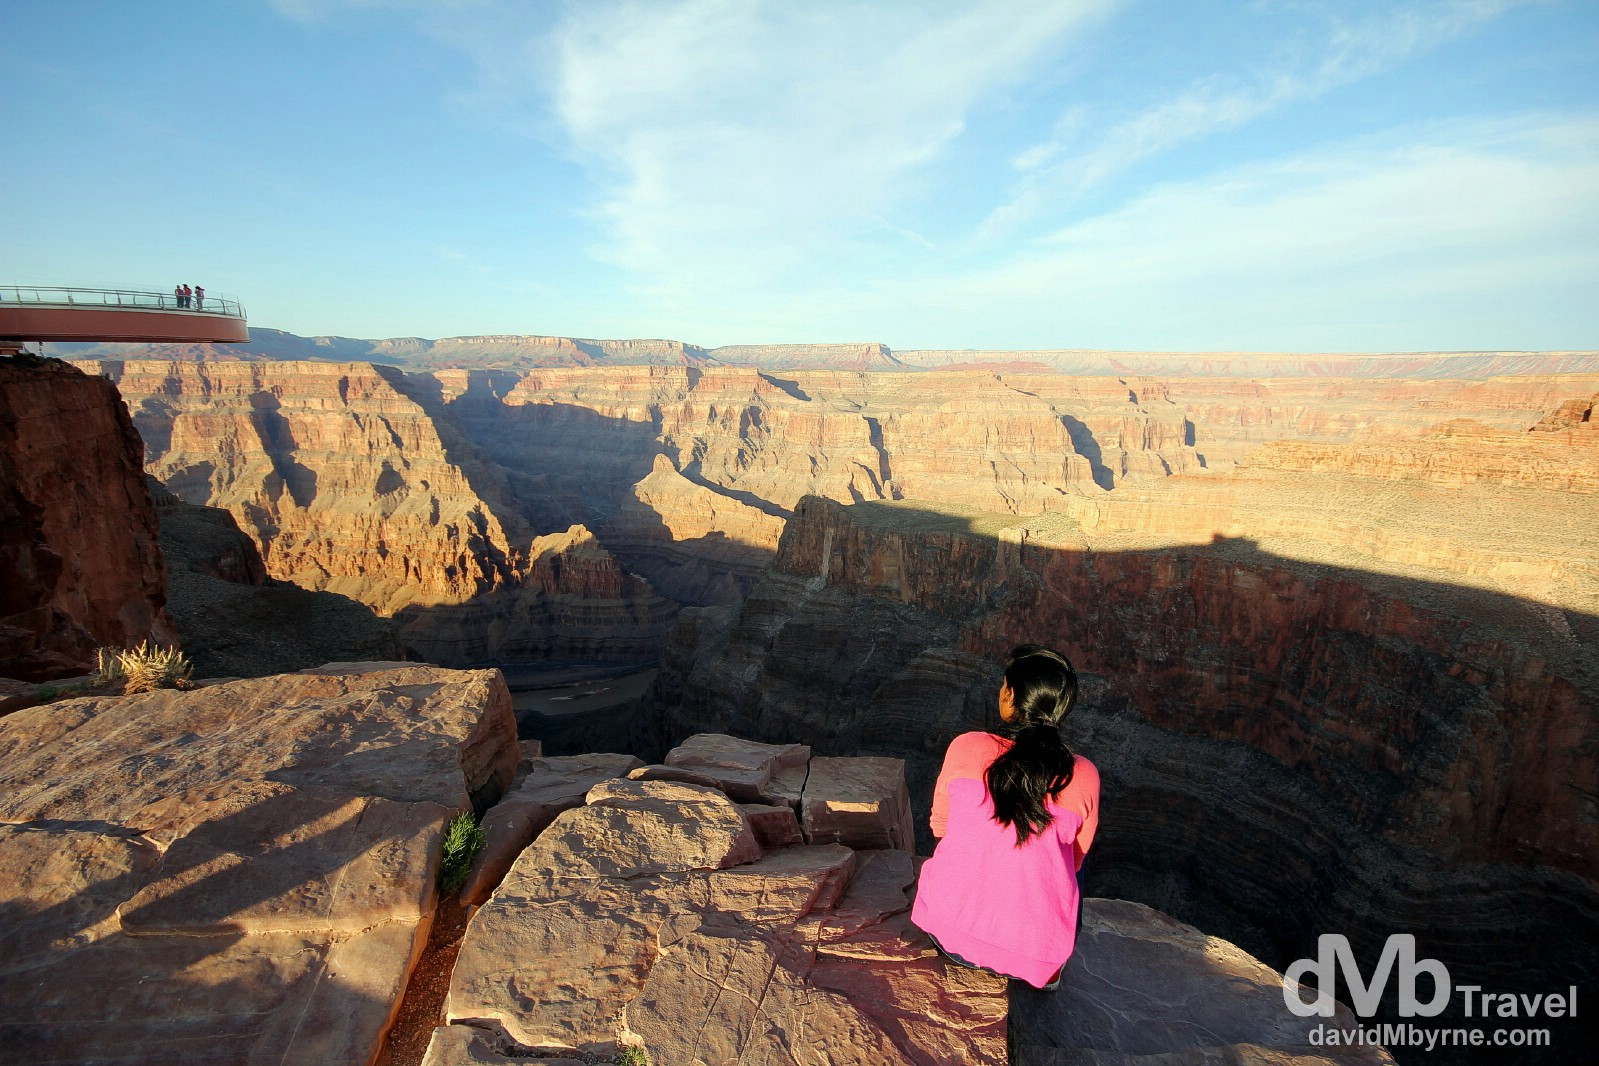 Sitting by the edge of The Grand Canyon at Eagle Point, The Grand Canyon West, Arizona, USA. April 6th 2013.